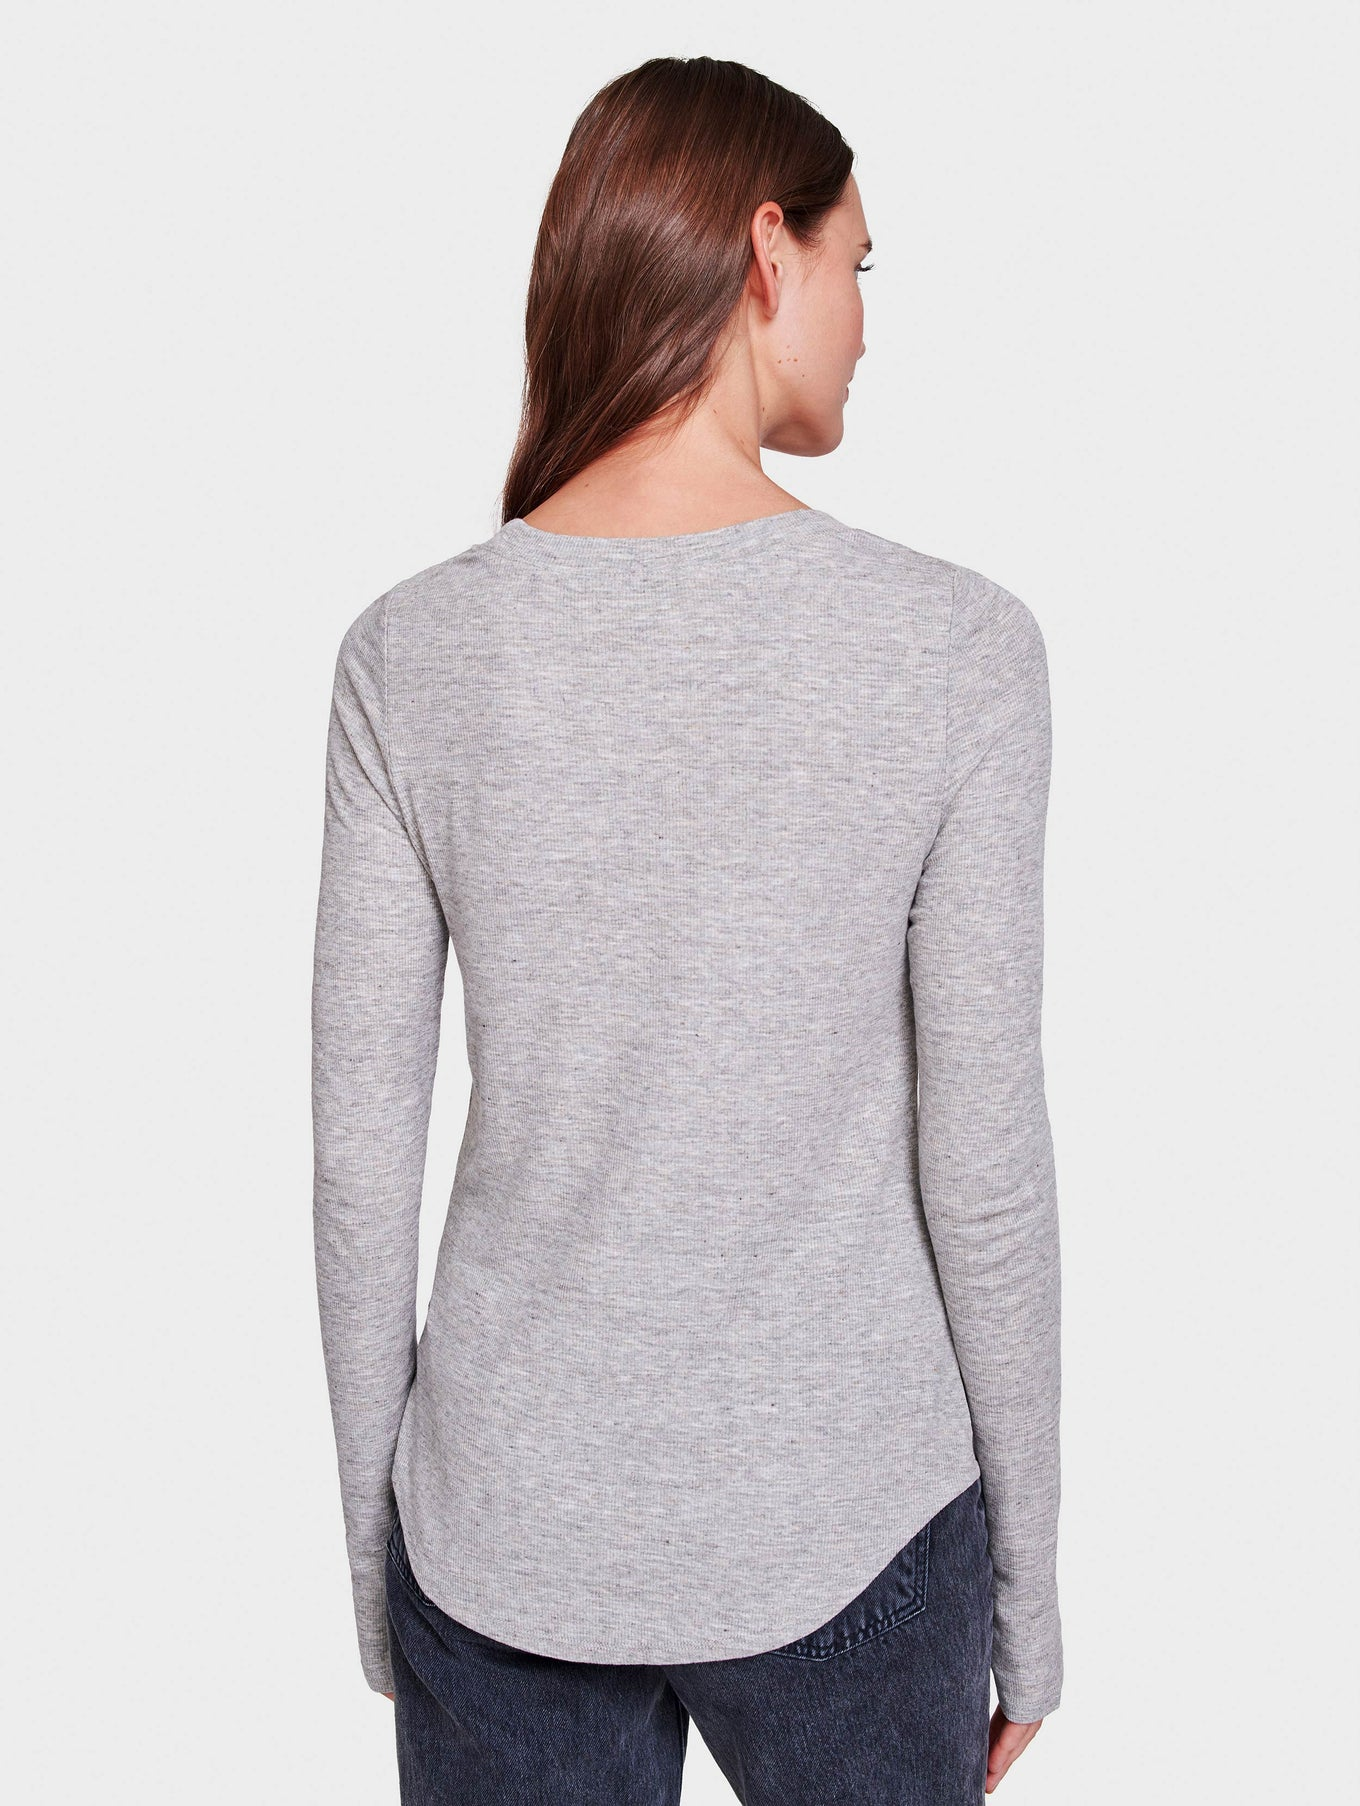 RIB JERSEY FITTED CREWNECK - Grey Heather - Image 3